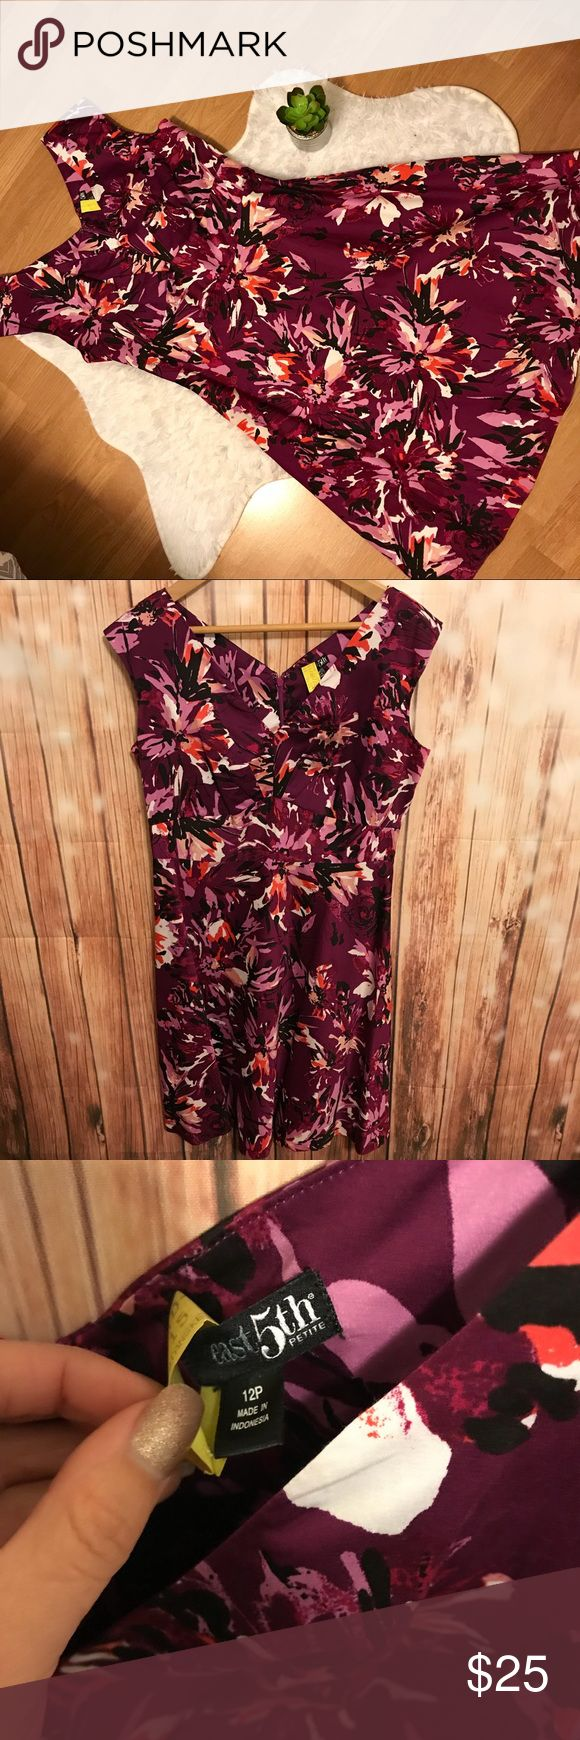 Floral East 5th Petite Dress Beautiful Dress! Purple floral design, flattering v neck cut. Perfect for weddings, showers, tea parties and more! Worn once to a wedding and dry cleaned after. Perfect condition. Smoke free home. East 5th Dresses